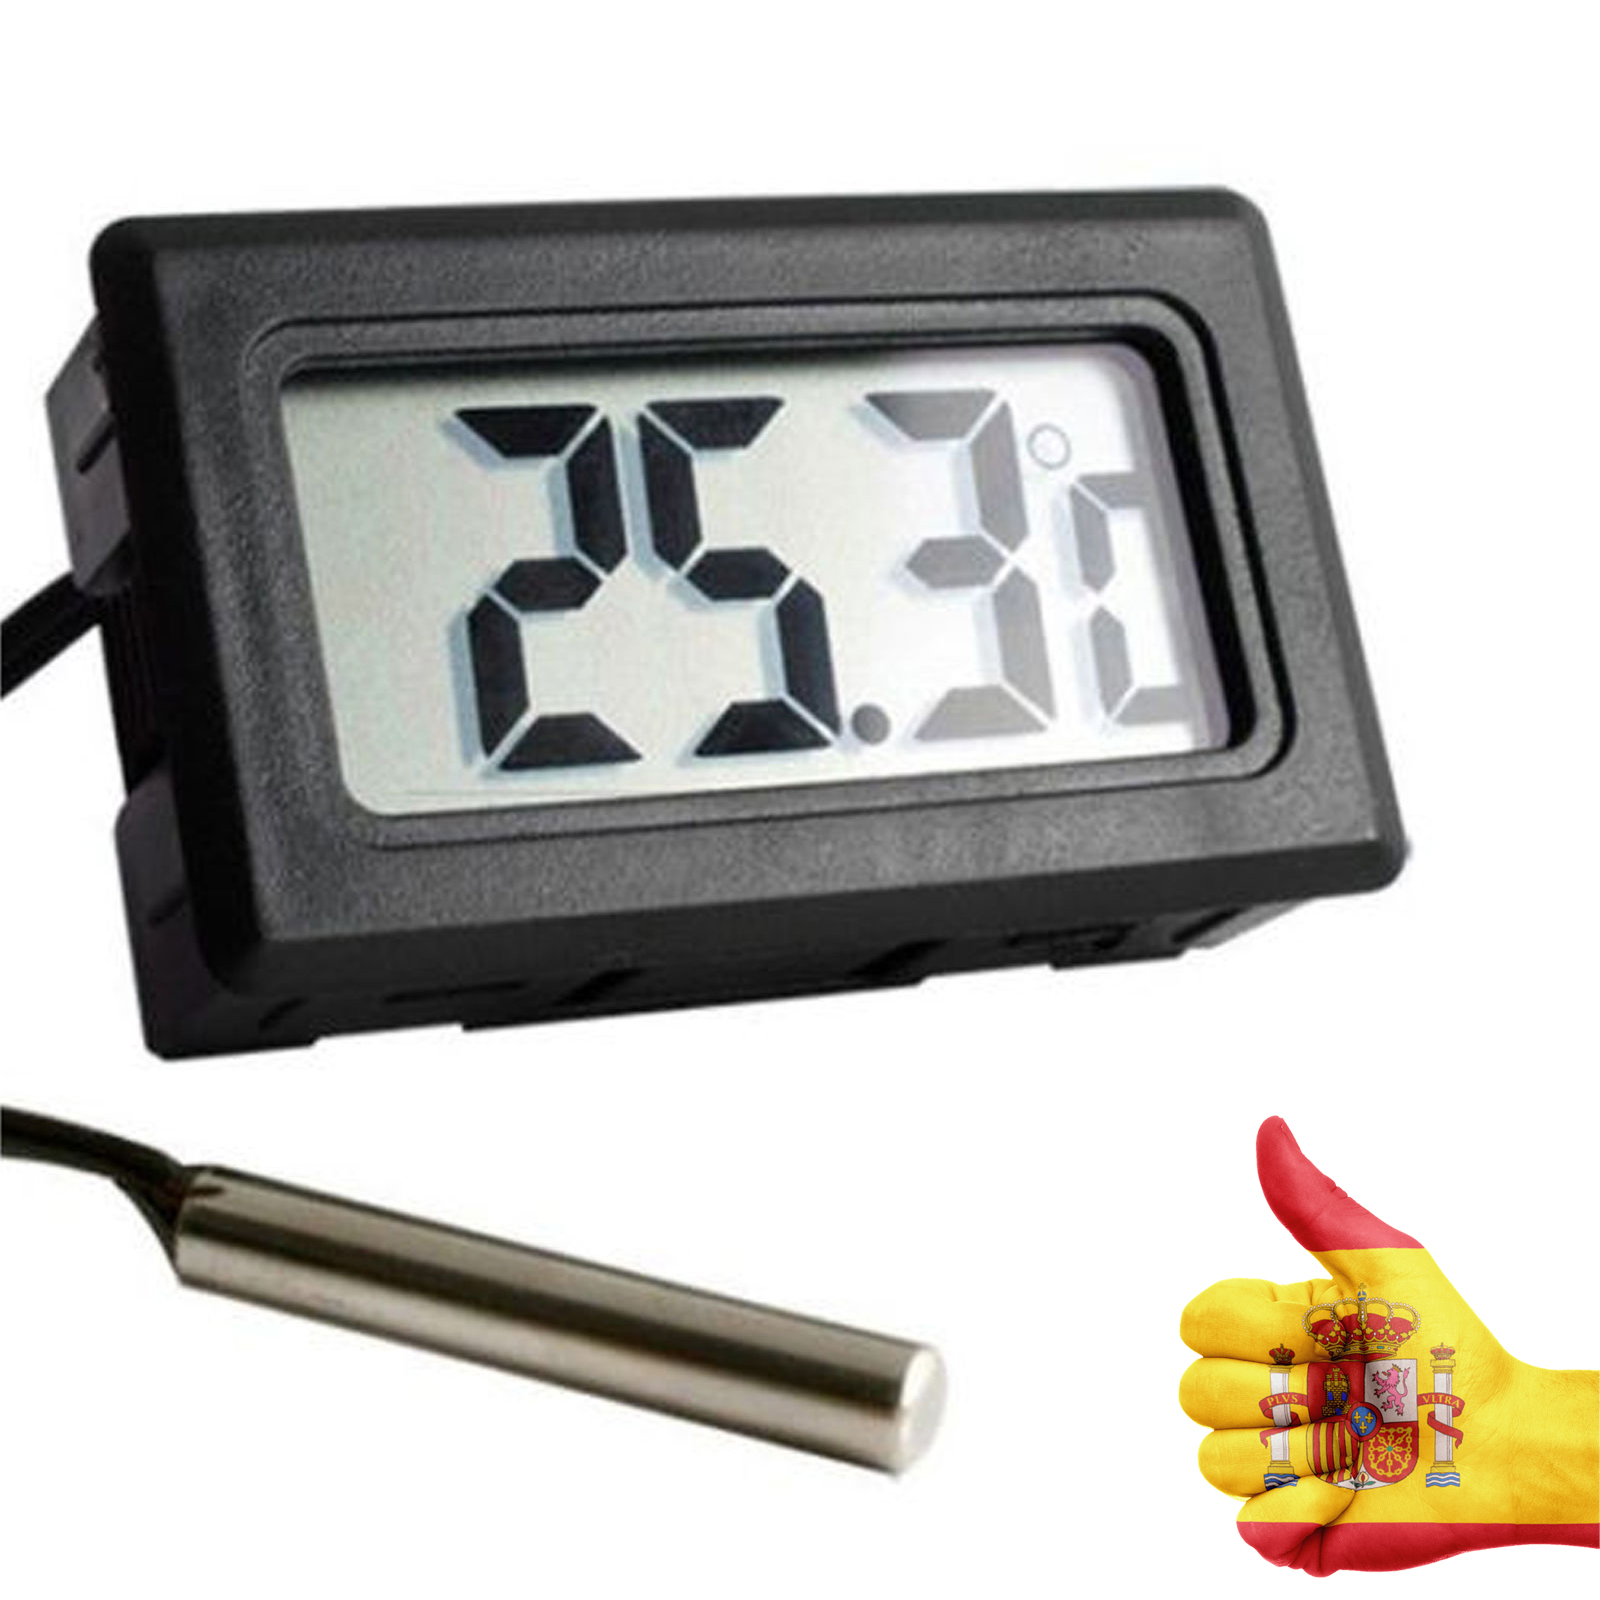 Thermometer Digital with External unit gauge for measuring temperature Cameras Fridges